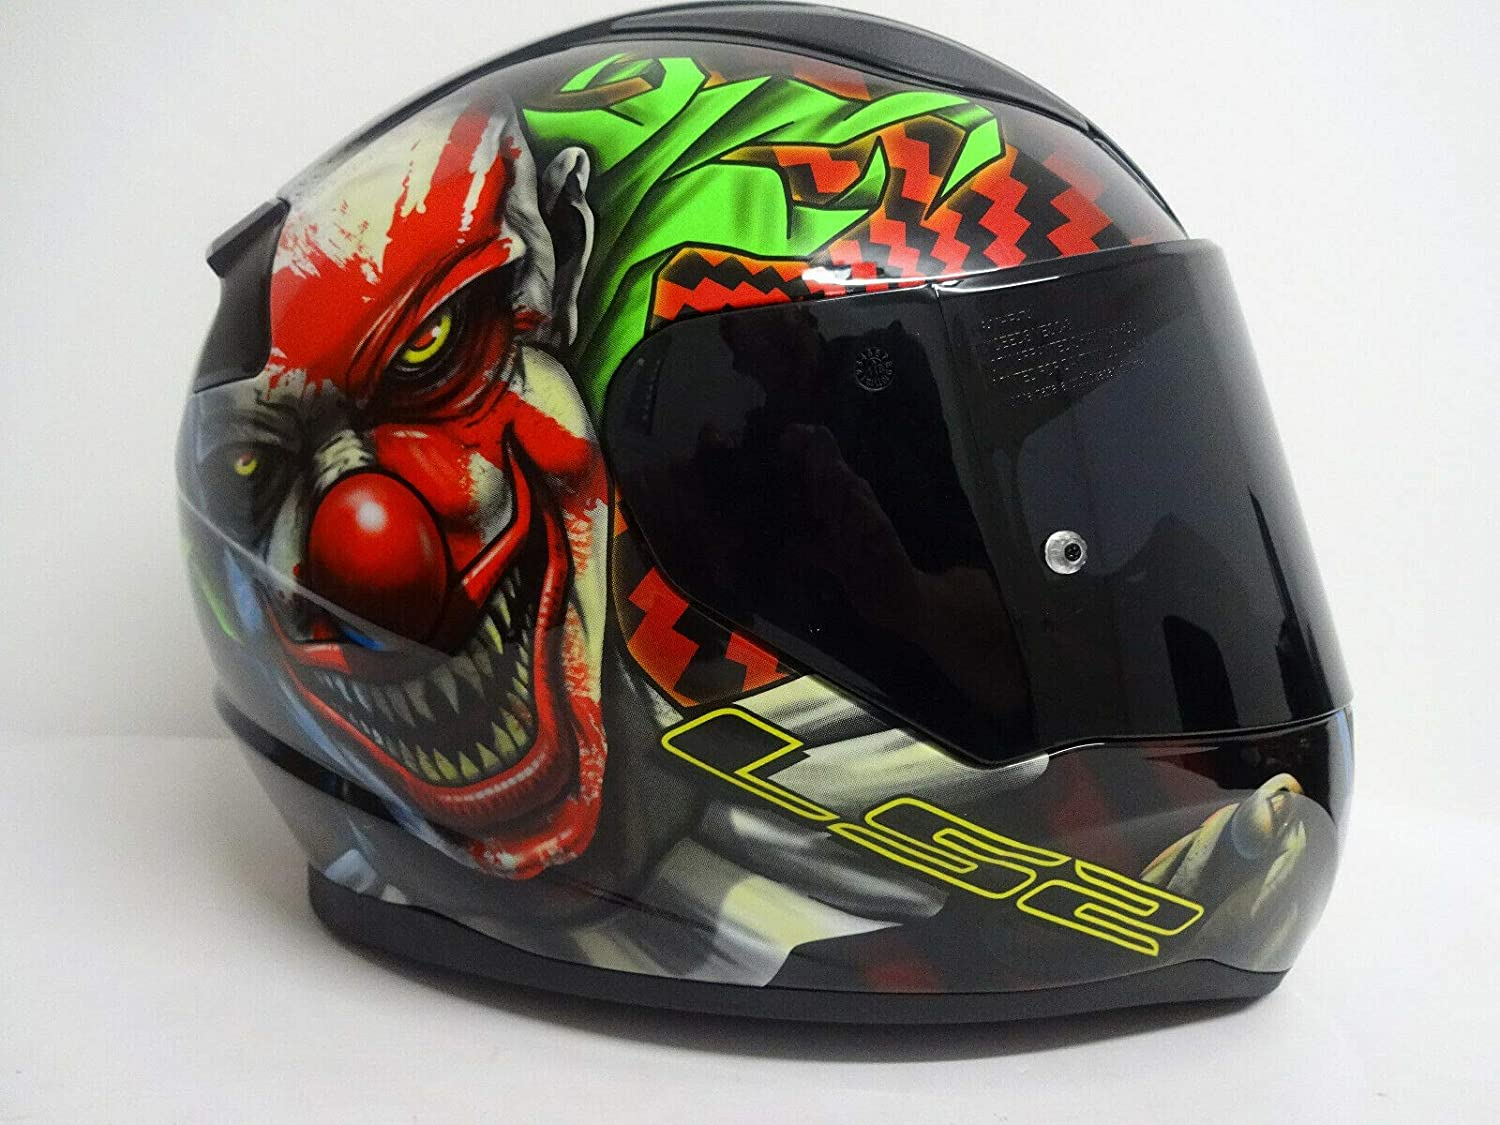 S Dark Tinted Visor Full Face Motorbike Helmet Motorcycle Adult Rider Biker Sports Crash Helmet LS2 FF353 RAPID HAPPY DREAMS GLOW-IN-THE-DARK SCARY CLOWN